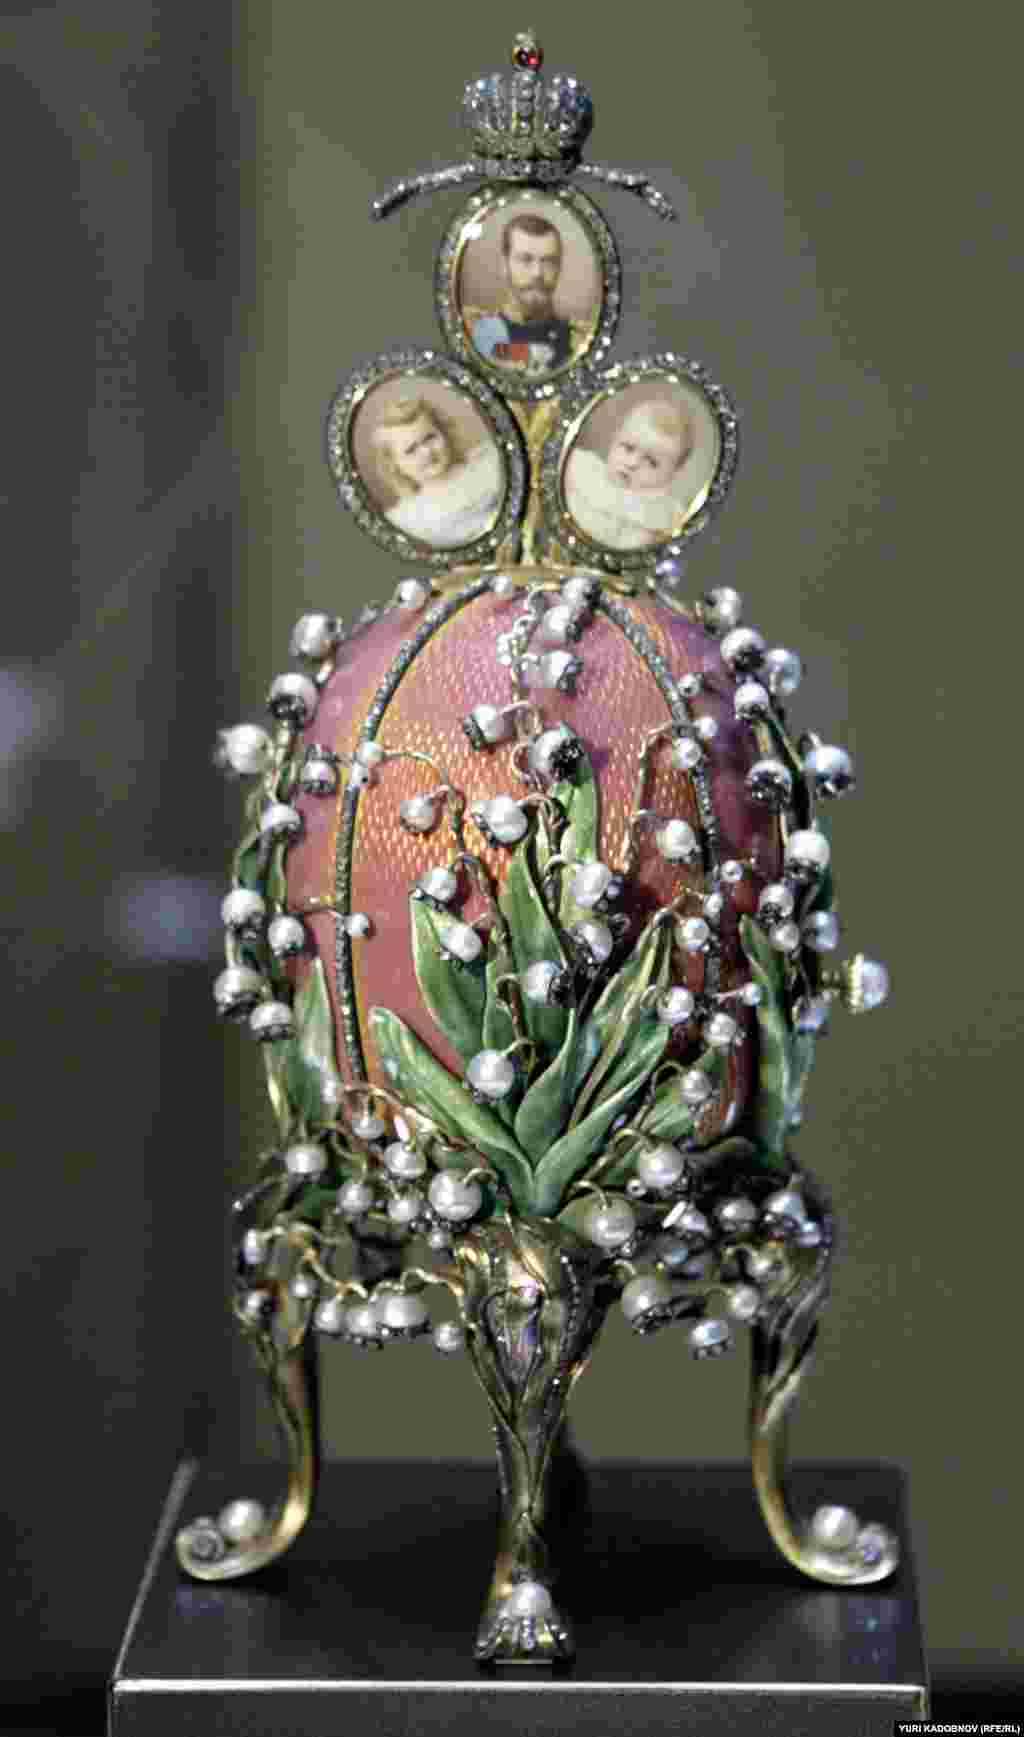 The Lilies of the Valley Egg of 1898, featuring the tsar and his first two daughters. After the 1917 revolution, Faberge fled Russia disguised as a diplomat. He died in exile in Switzerland in 1920. Faberge's imperial eggs stand today as a symbol of the decadence, as well as the taste and the elegance of an age the likes of which might never be seen again.